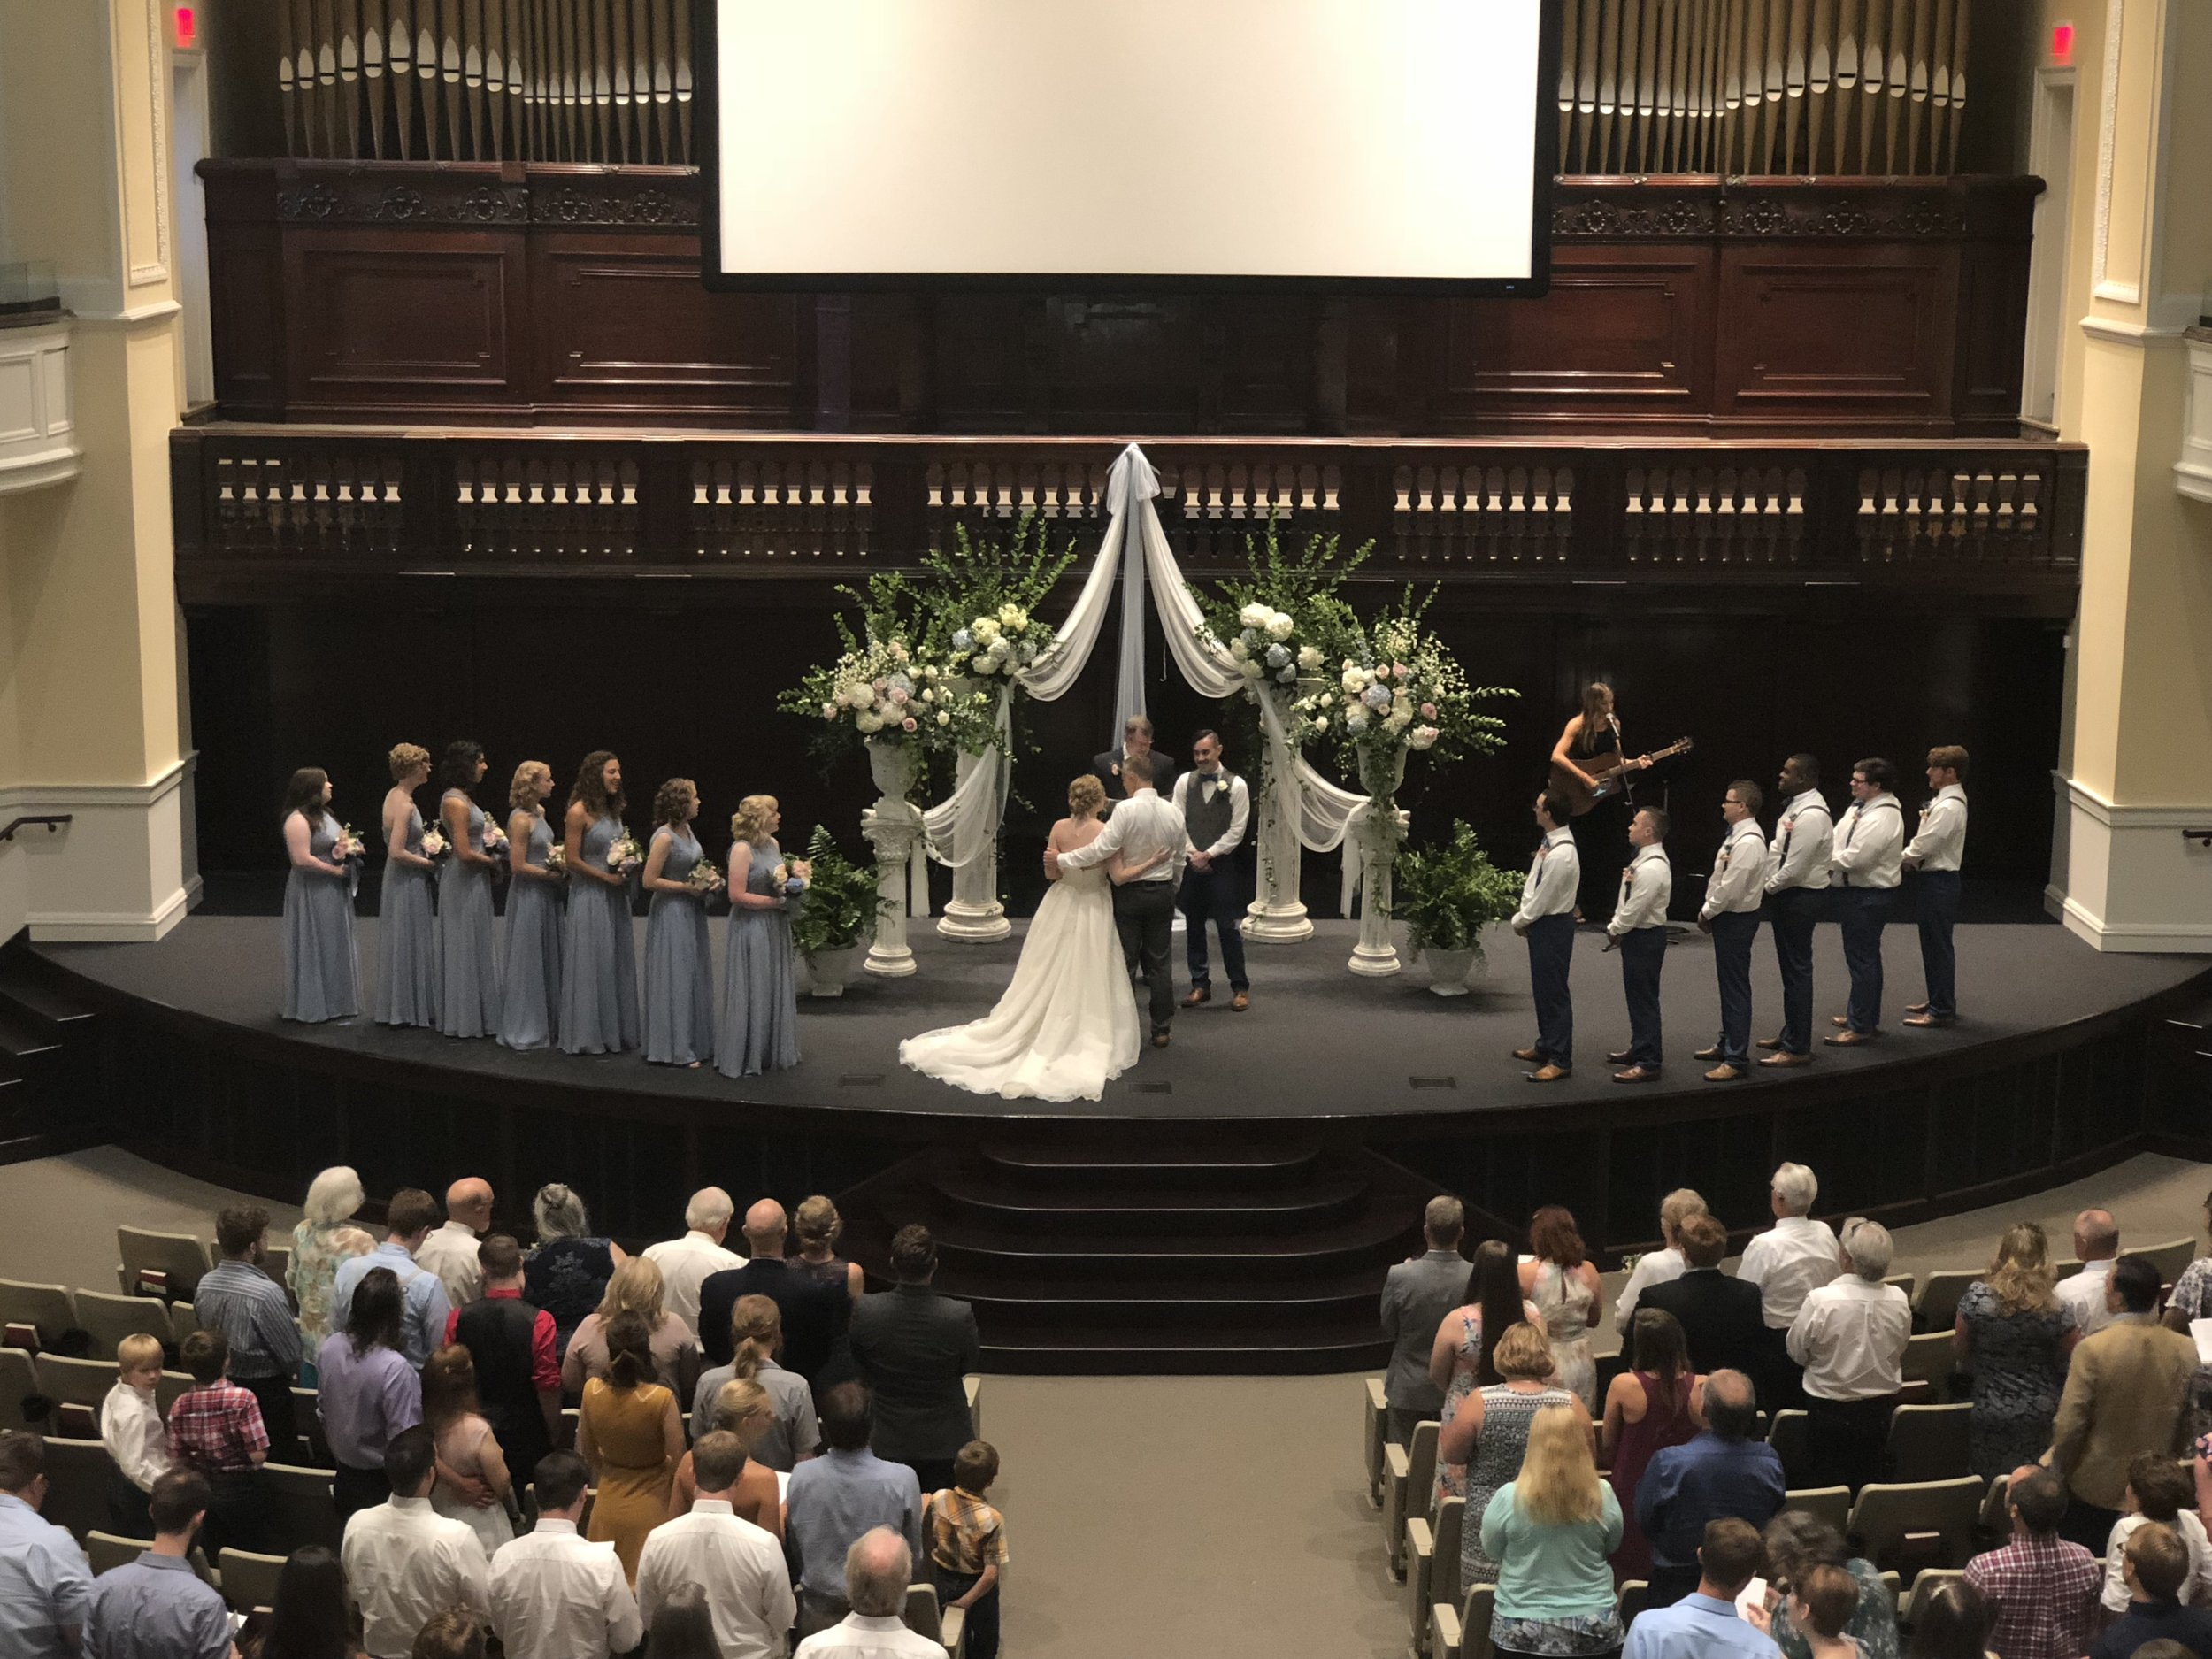 Wedding decor staged at historical Immanuel Baptist Church